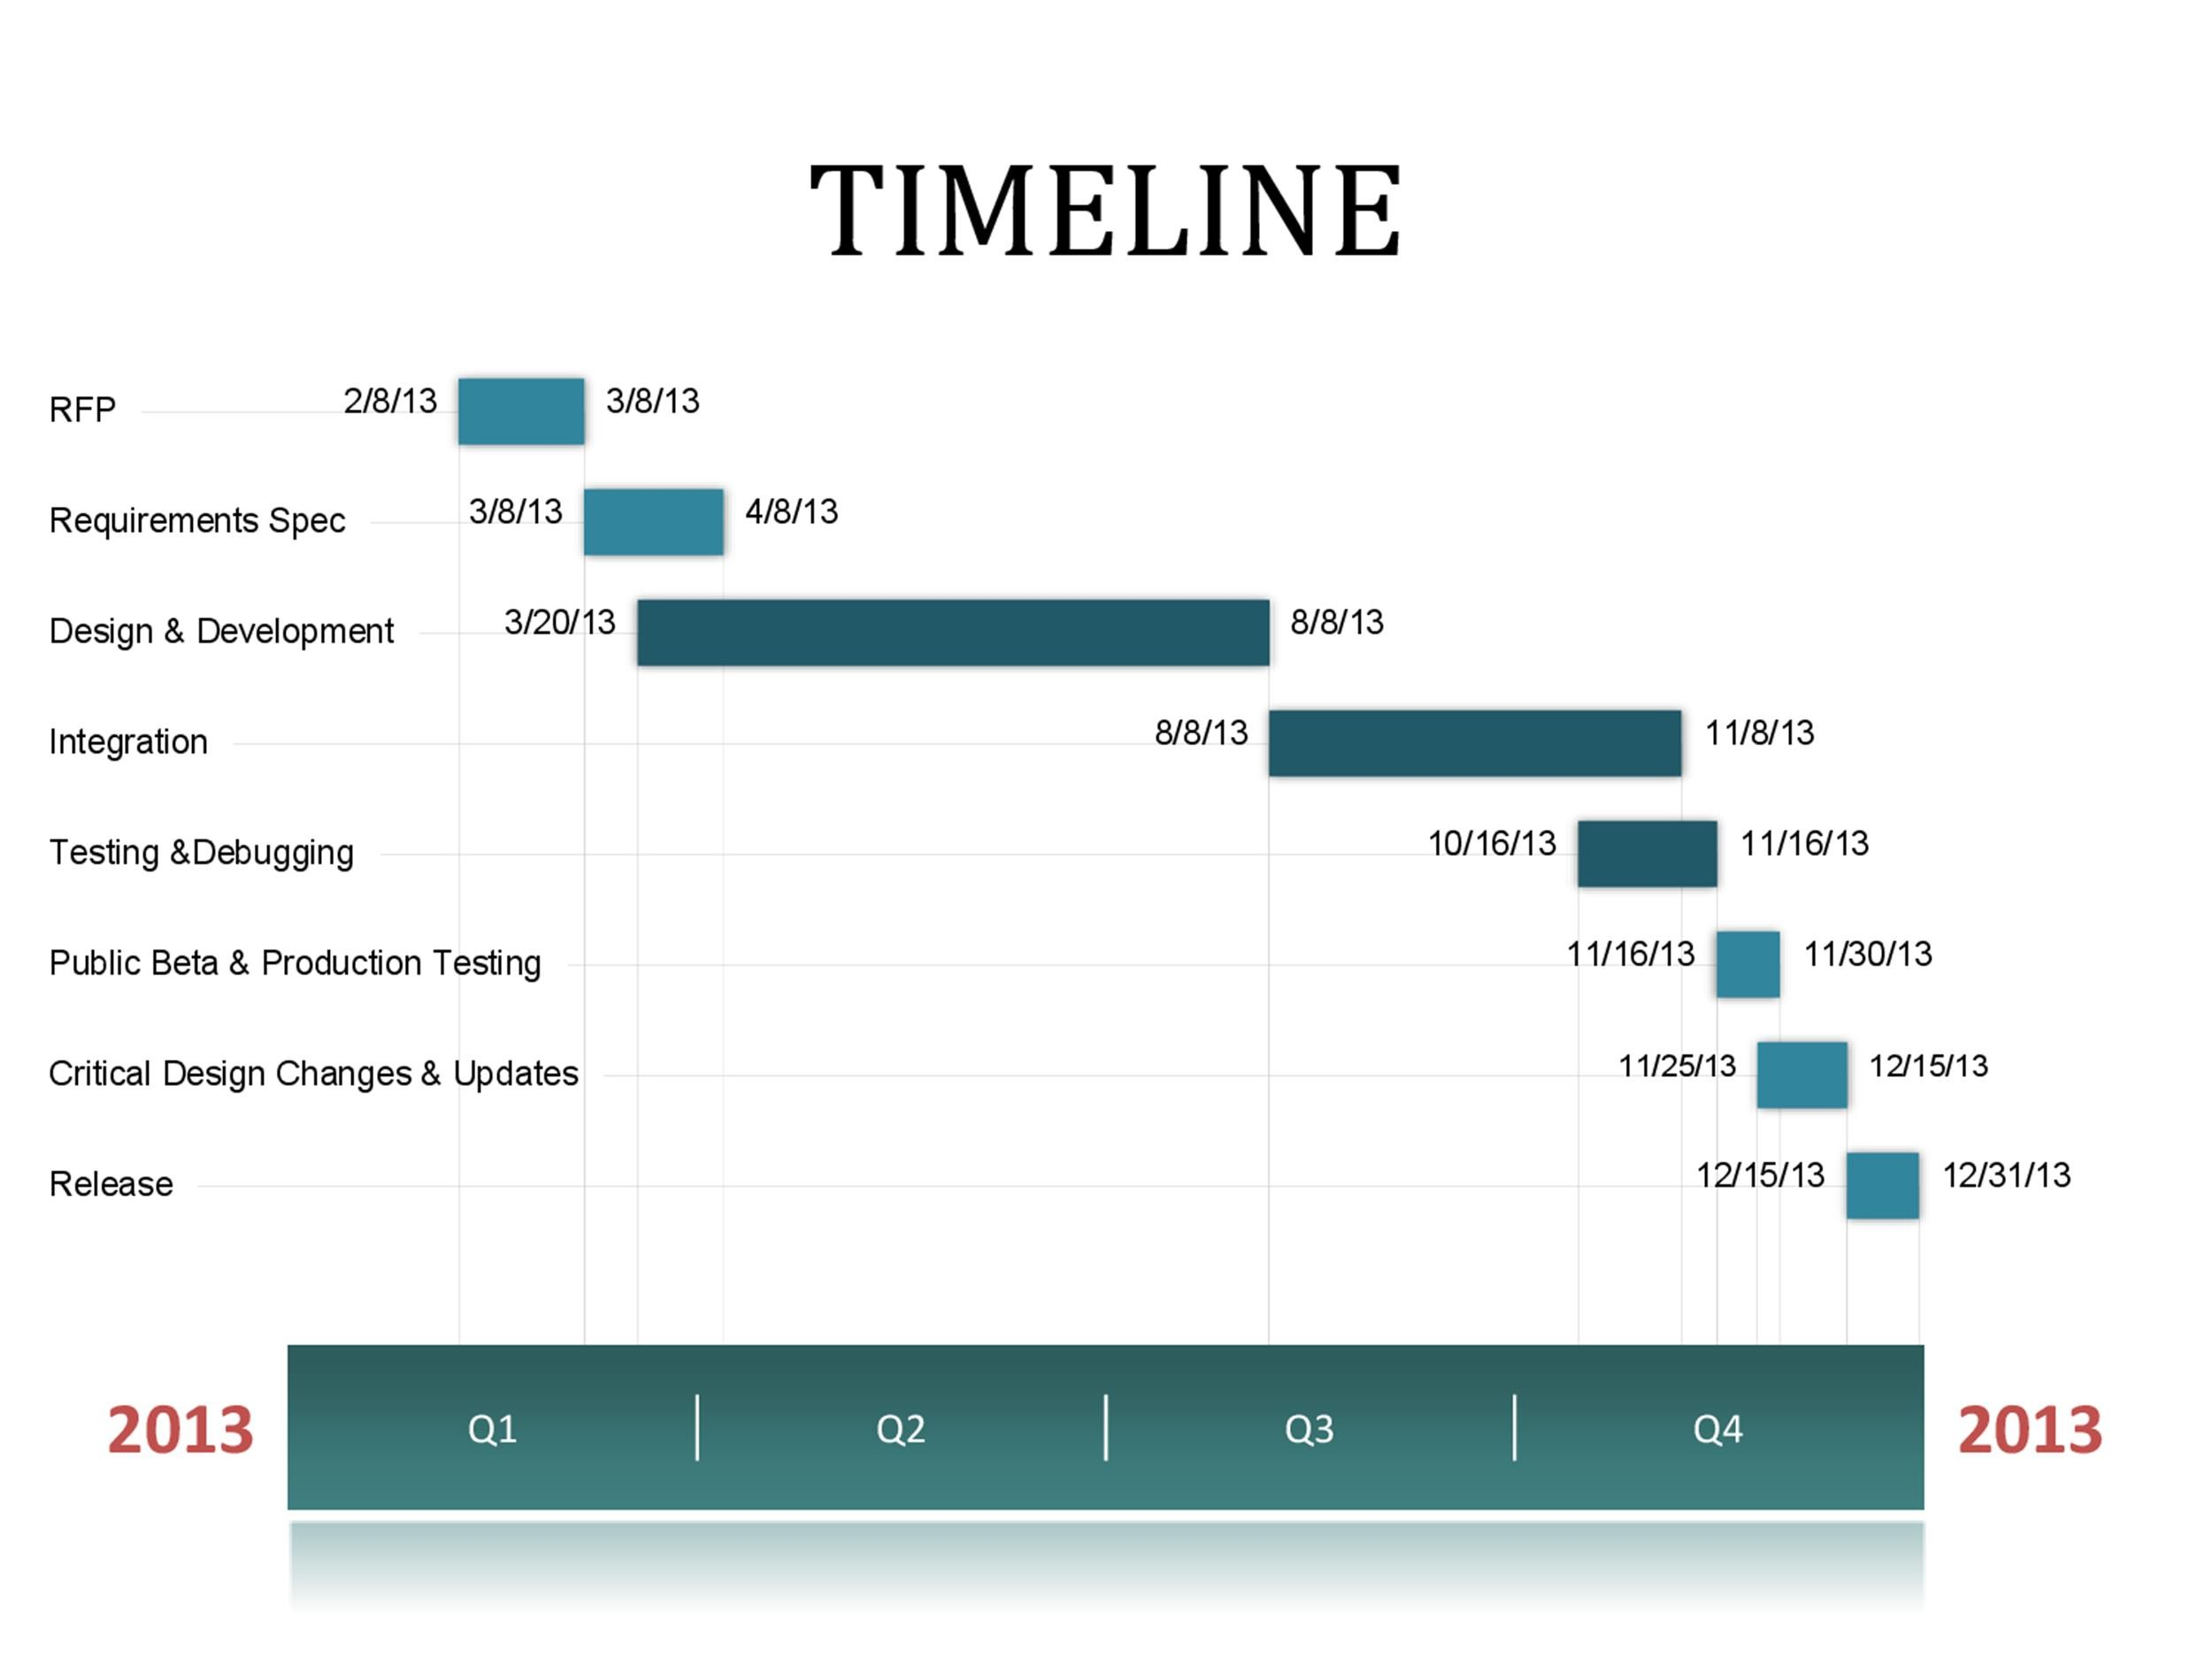 Timeline Templates Excel Power Point Word Template Lab - Timeline templates for word